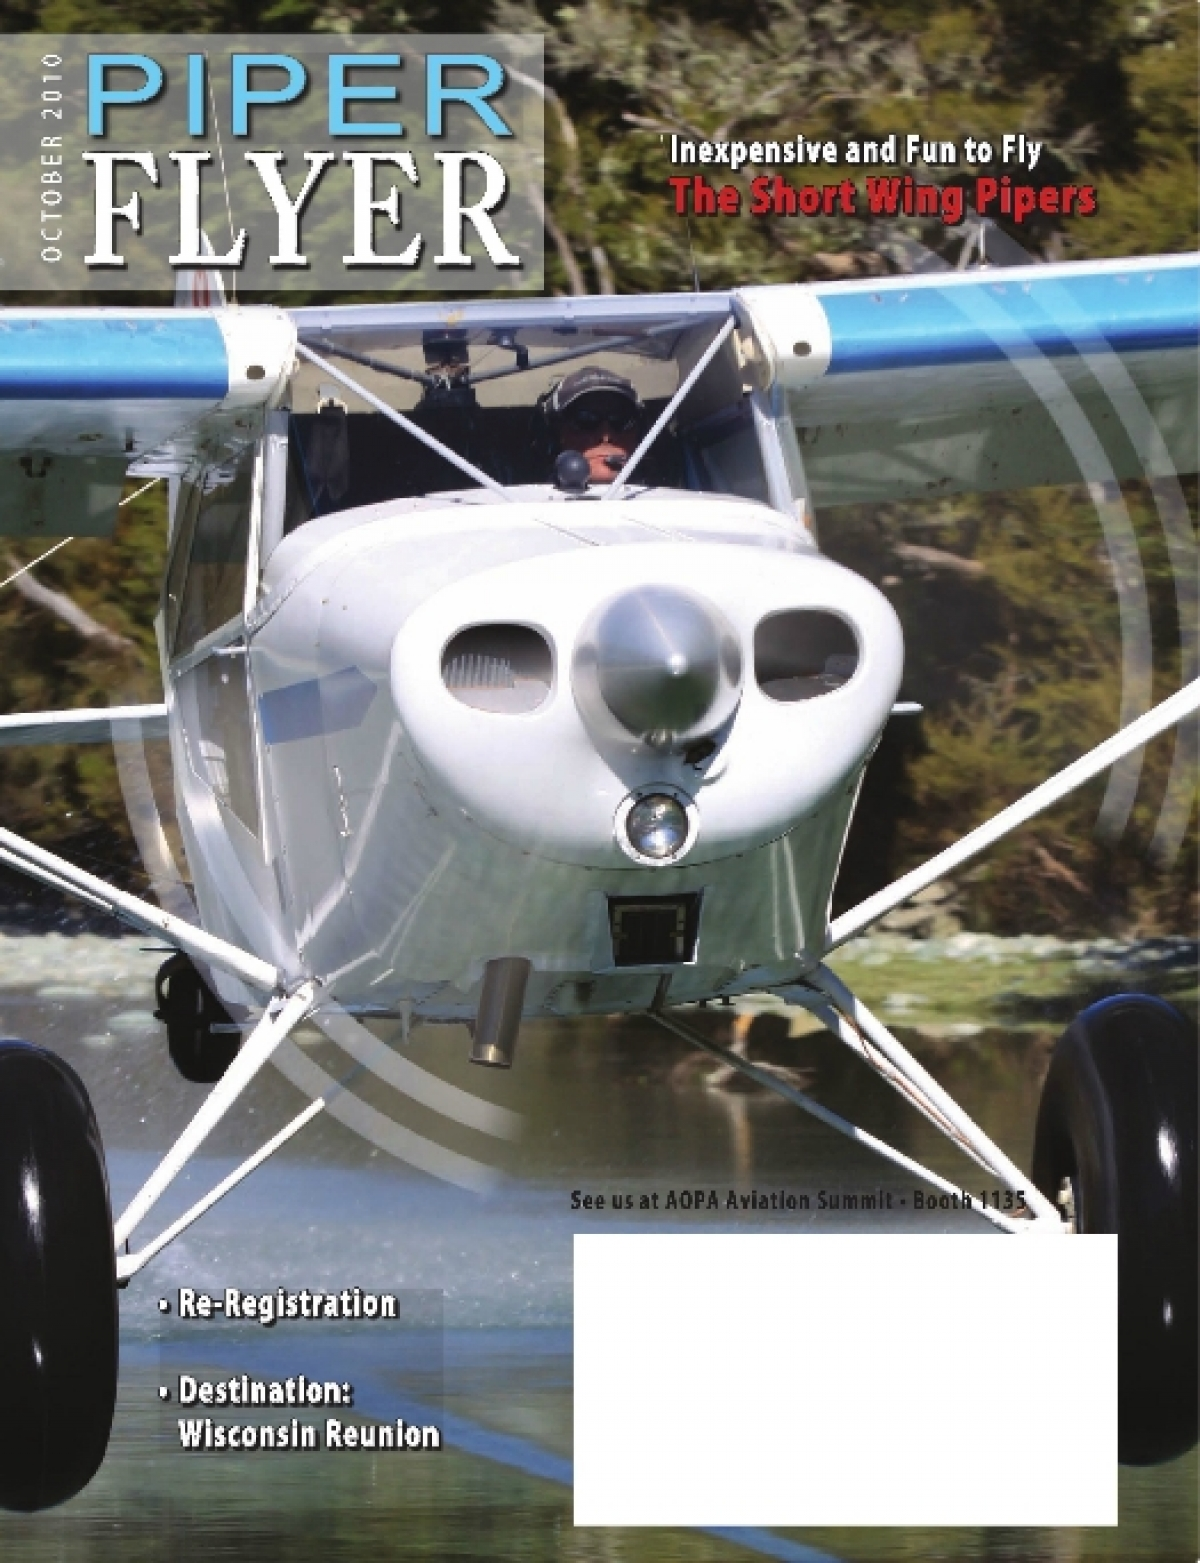 October 2010 Piper Flyer magazine